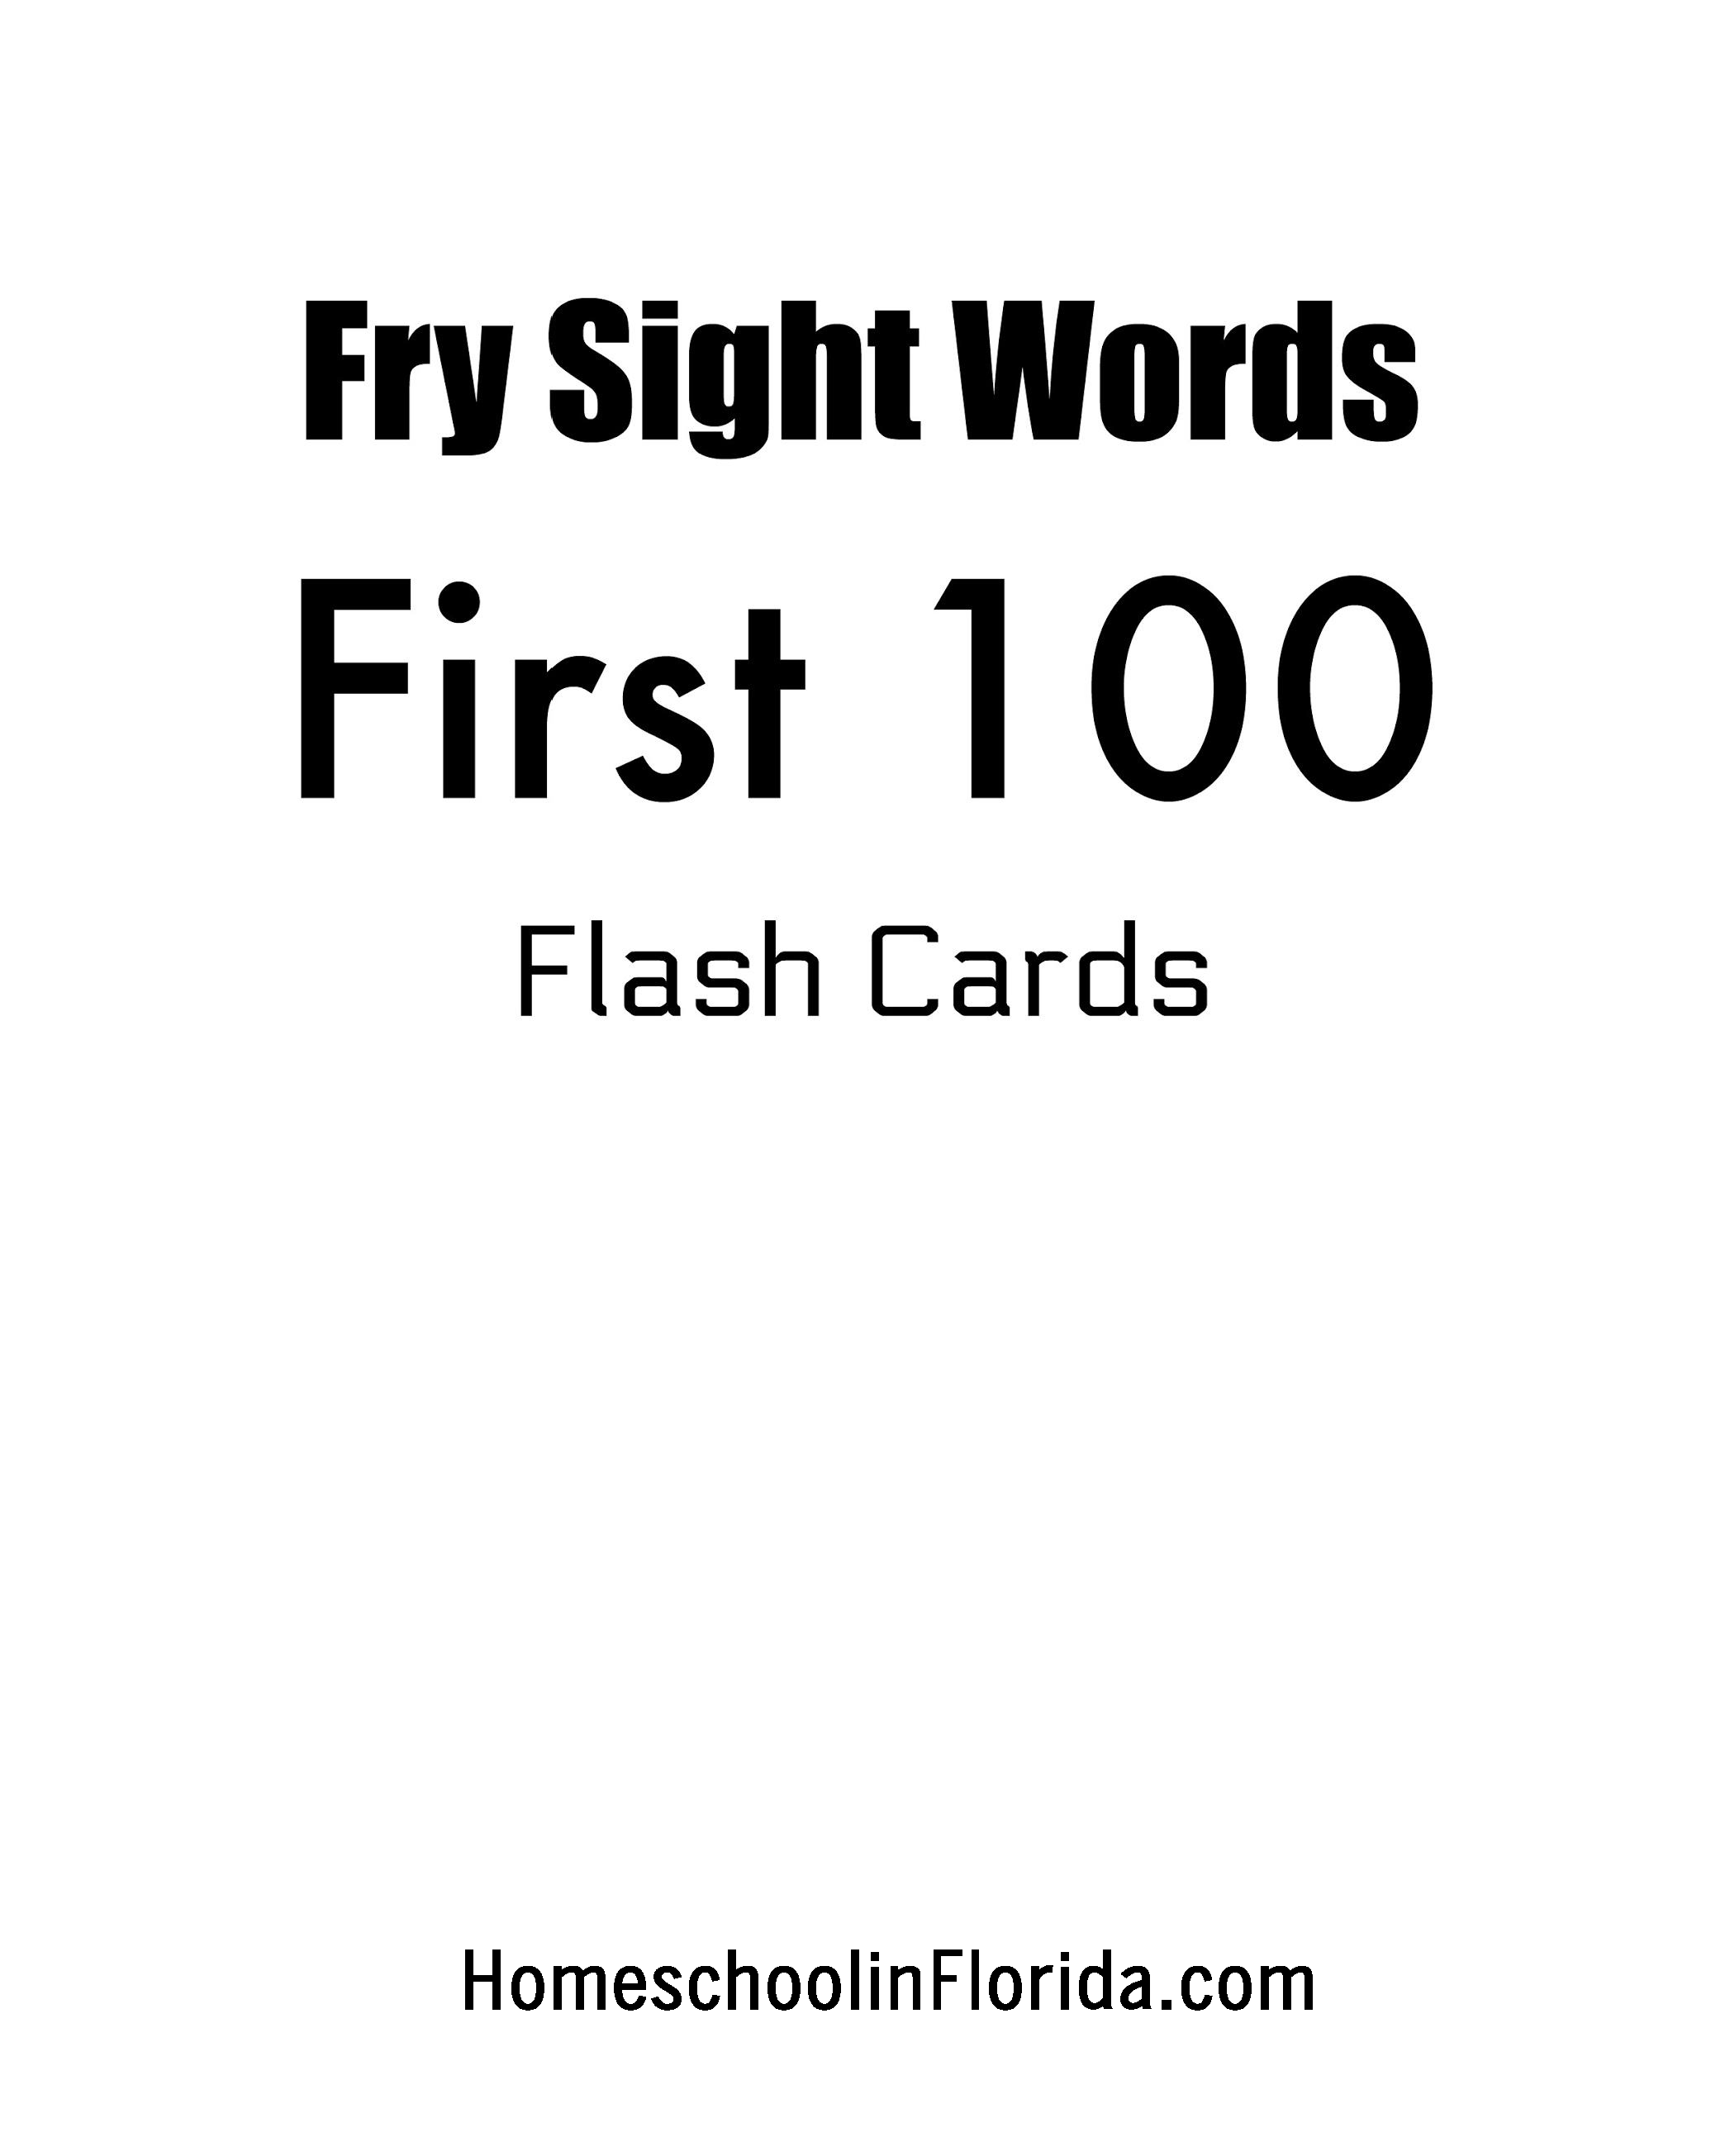 Fry sight words first 100 flash cards